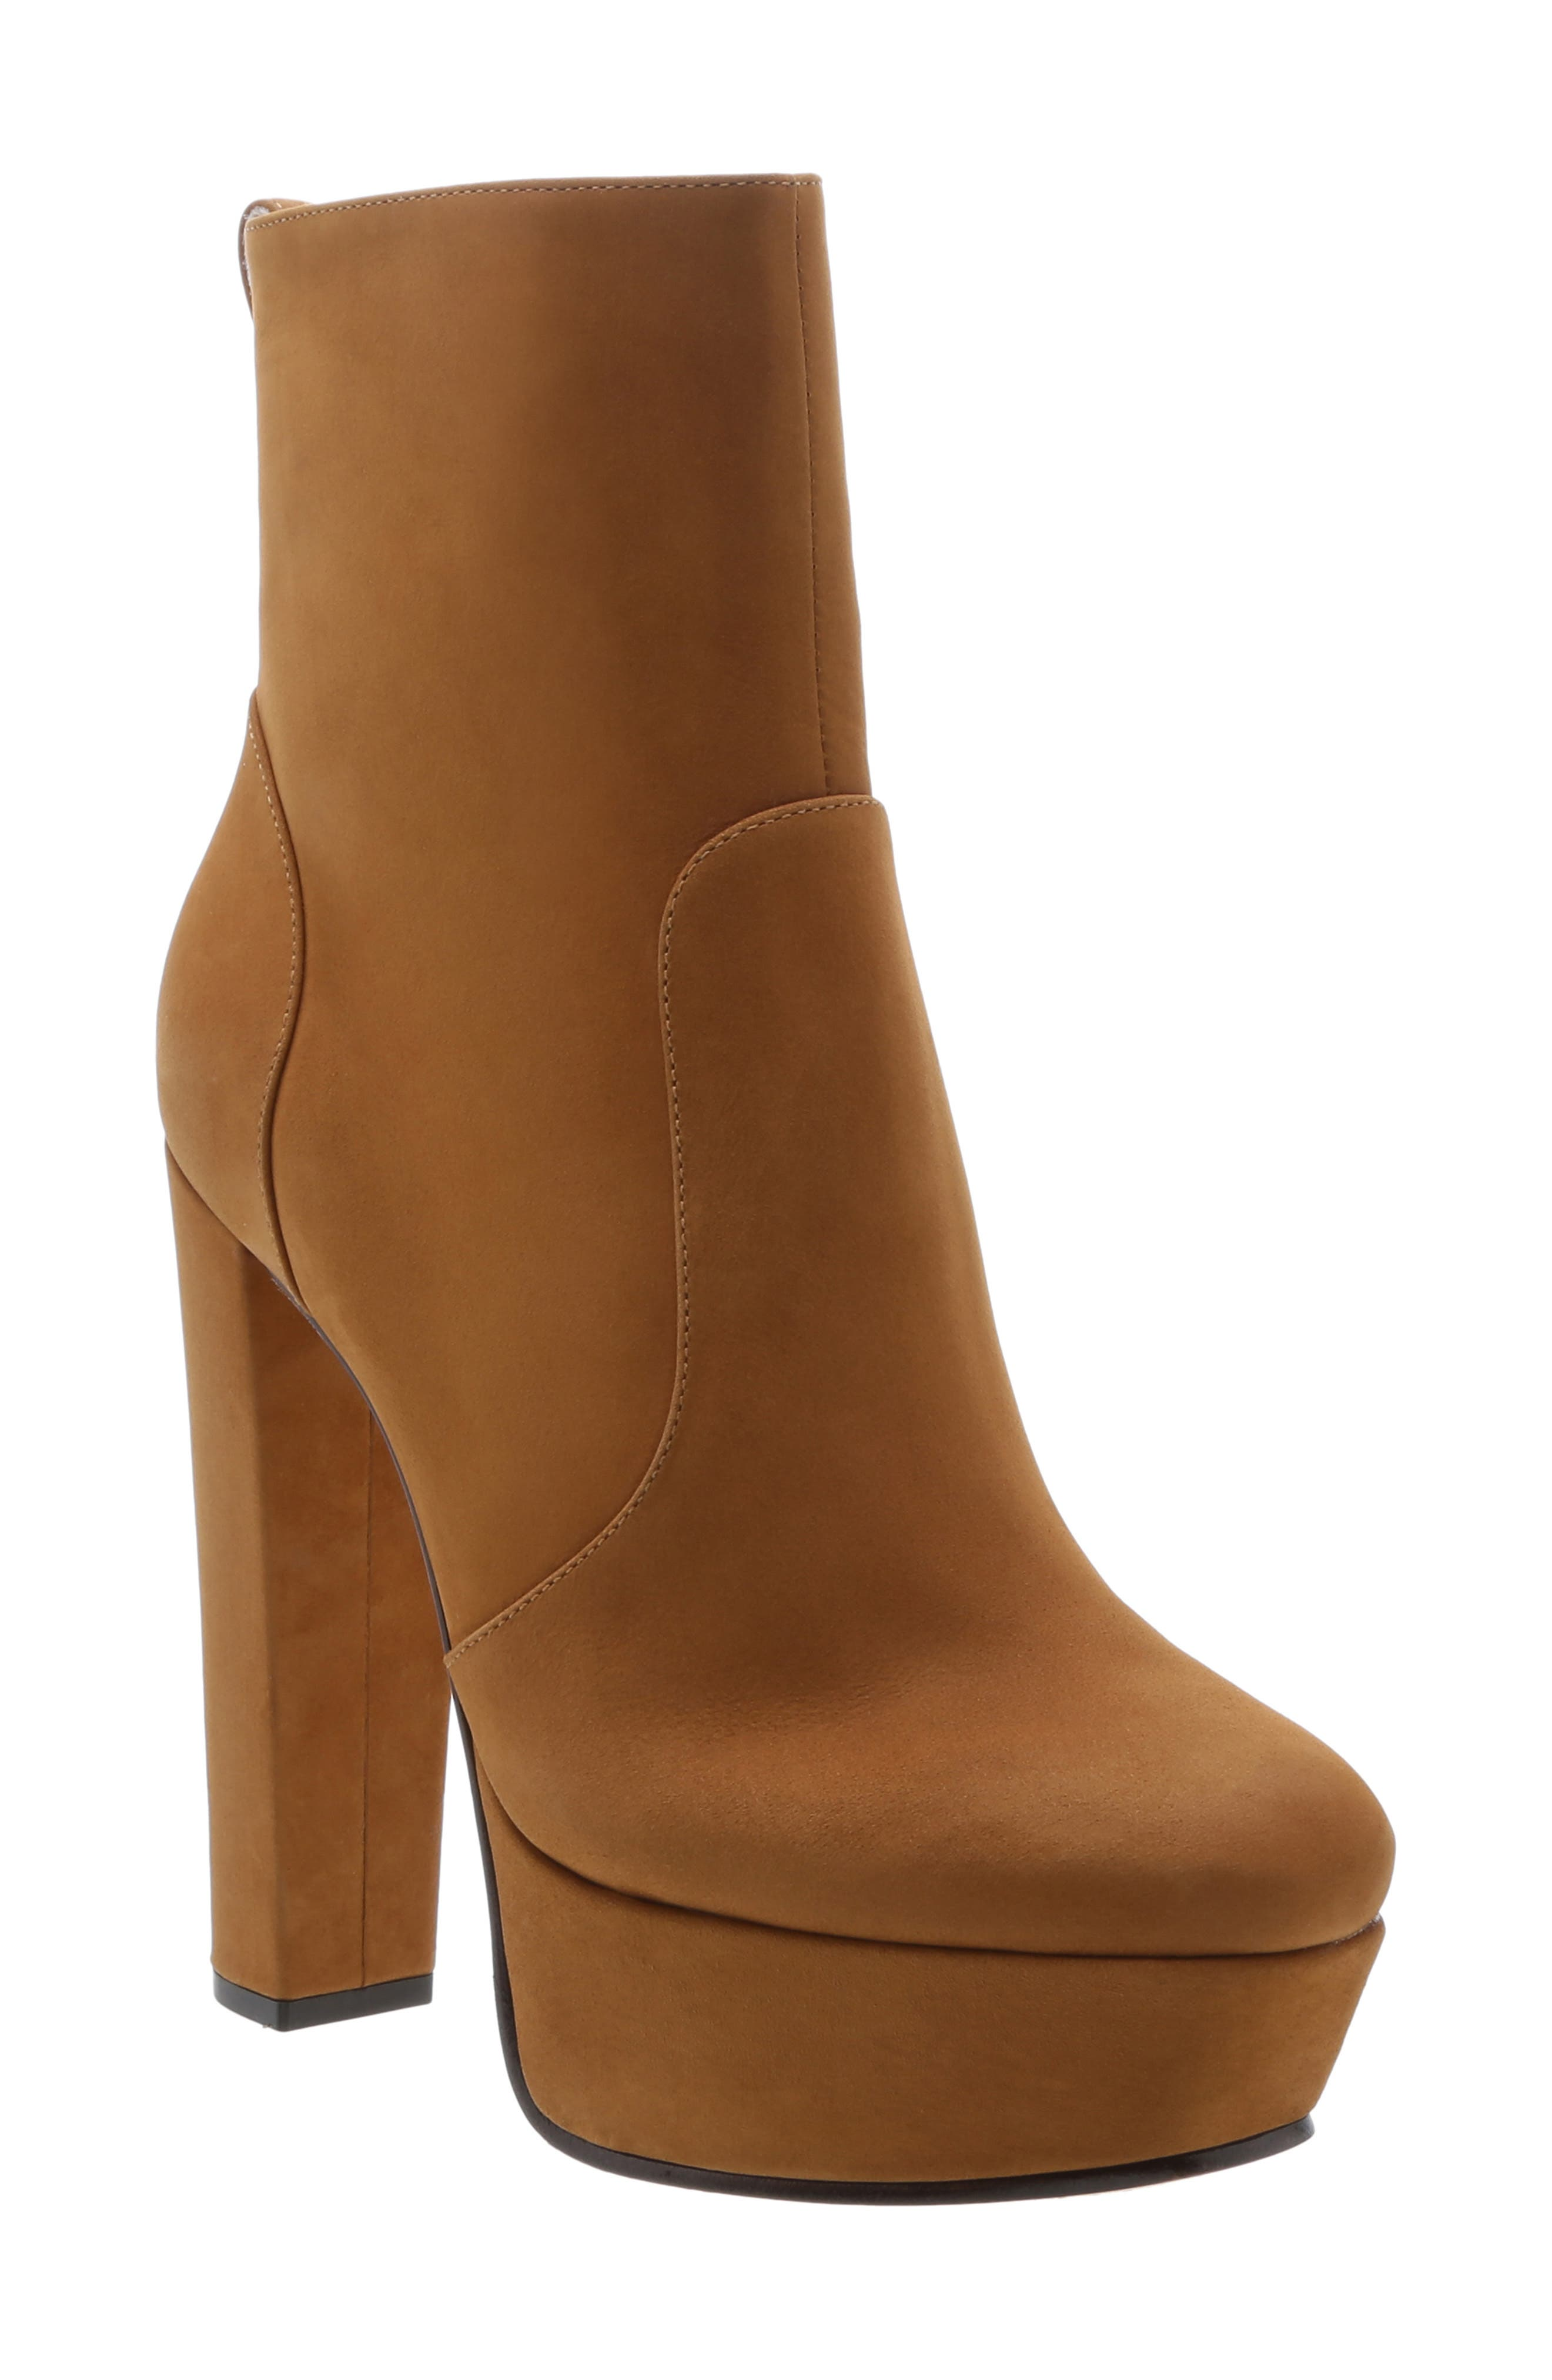 Image of Schutz July Leather Platform Ankle Boot